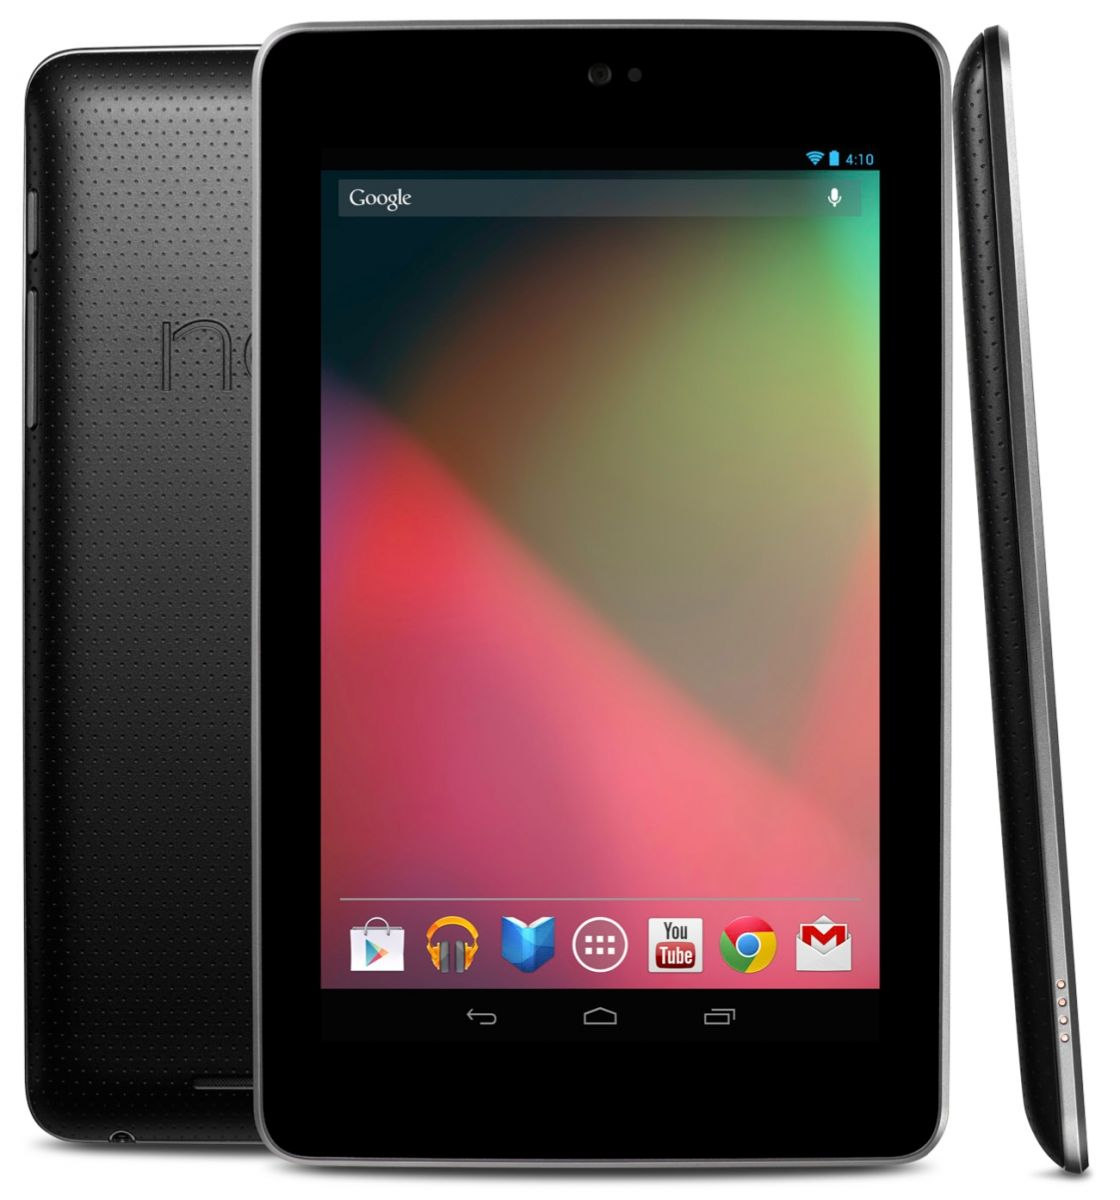 making calls with google voice on android tablet